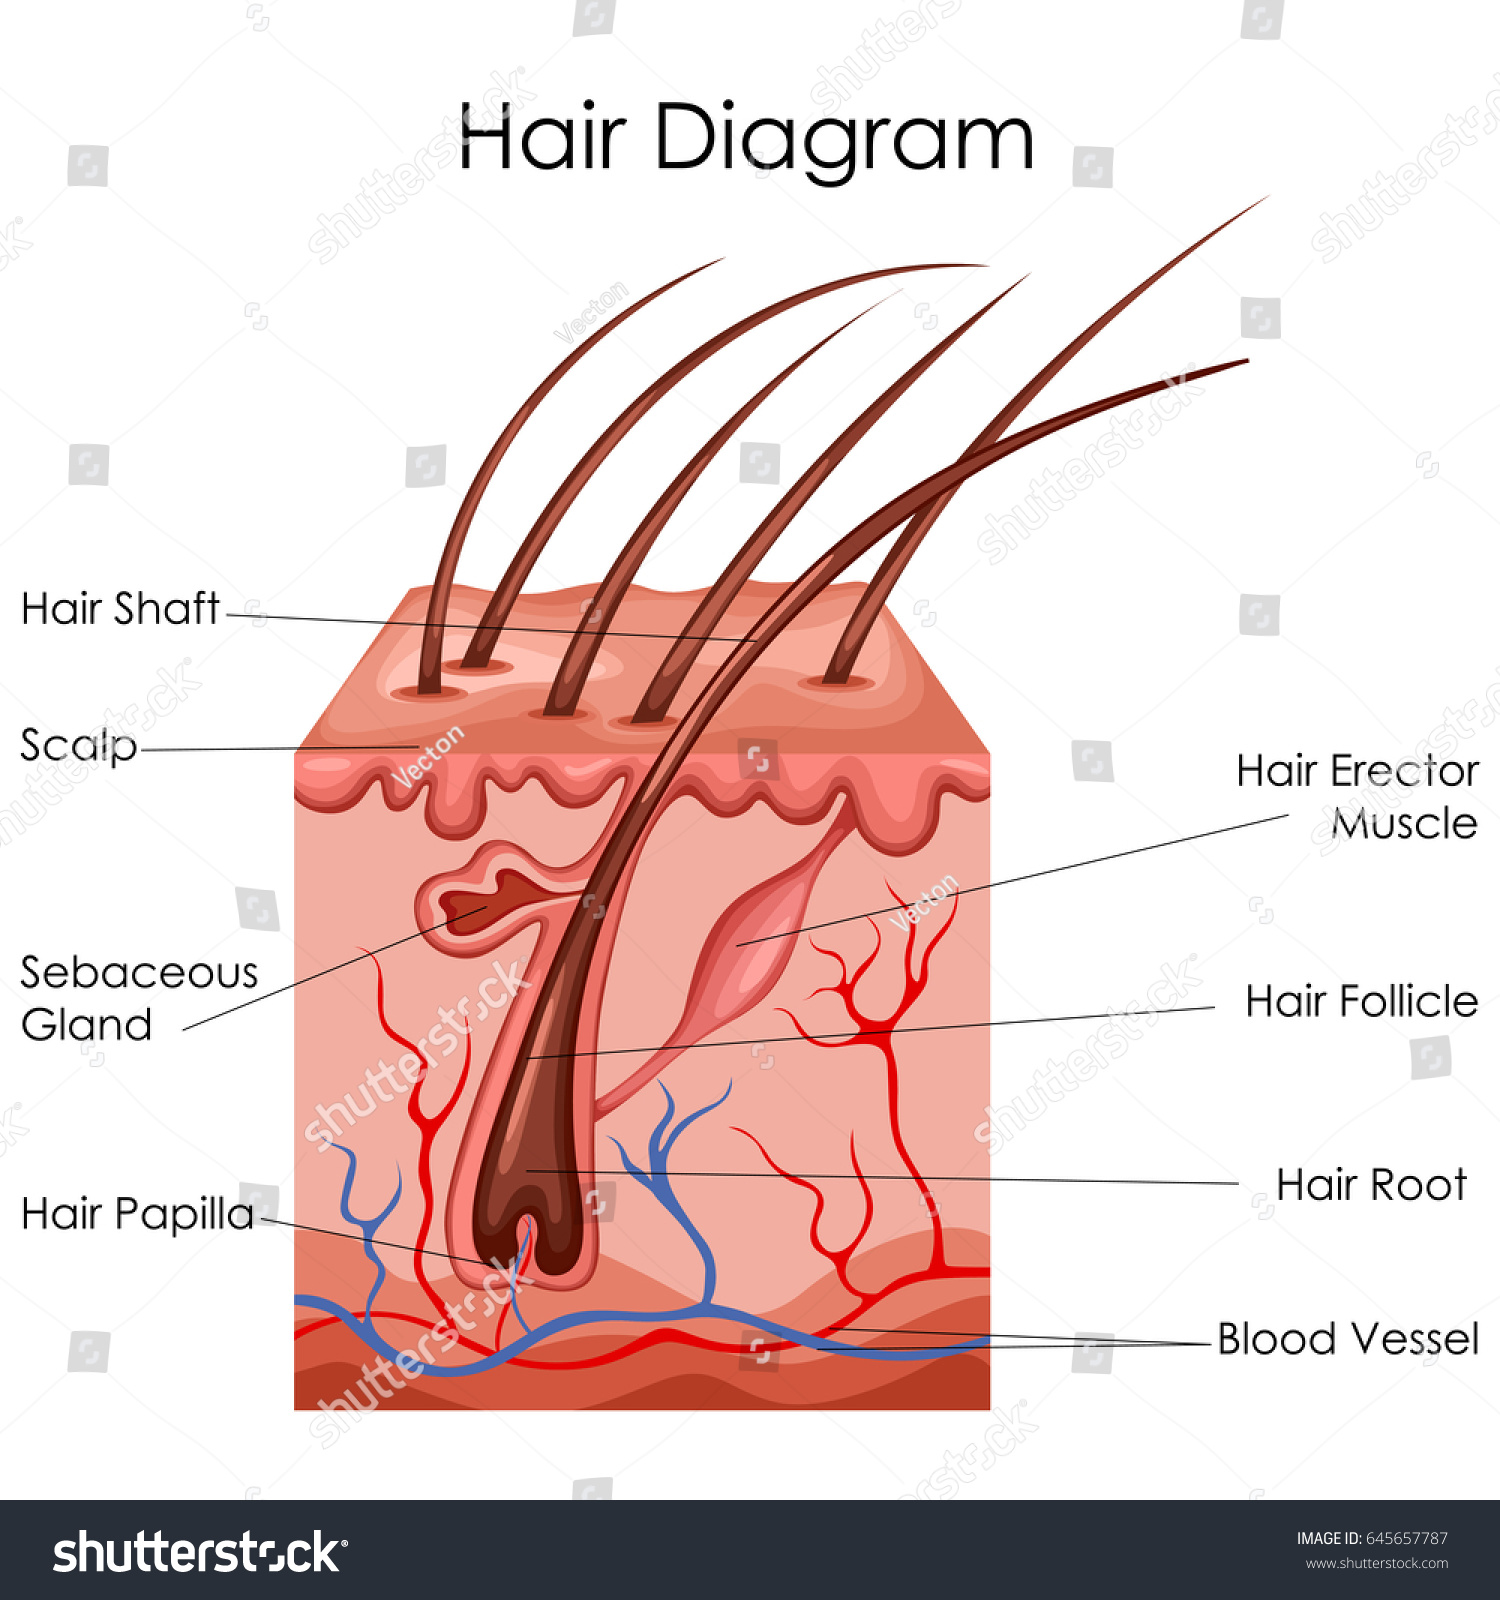 Modern Hair Shaft Anatomy Composition - Human Anatomy Images ...